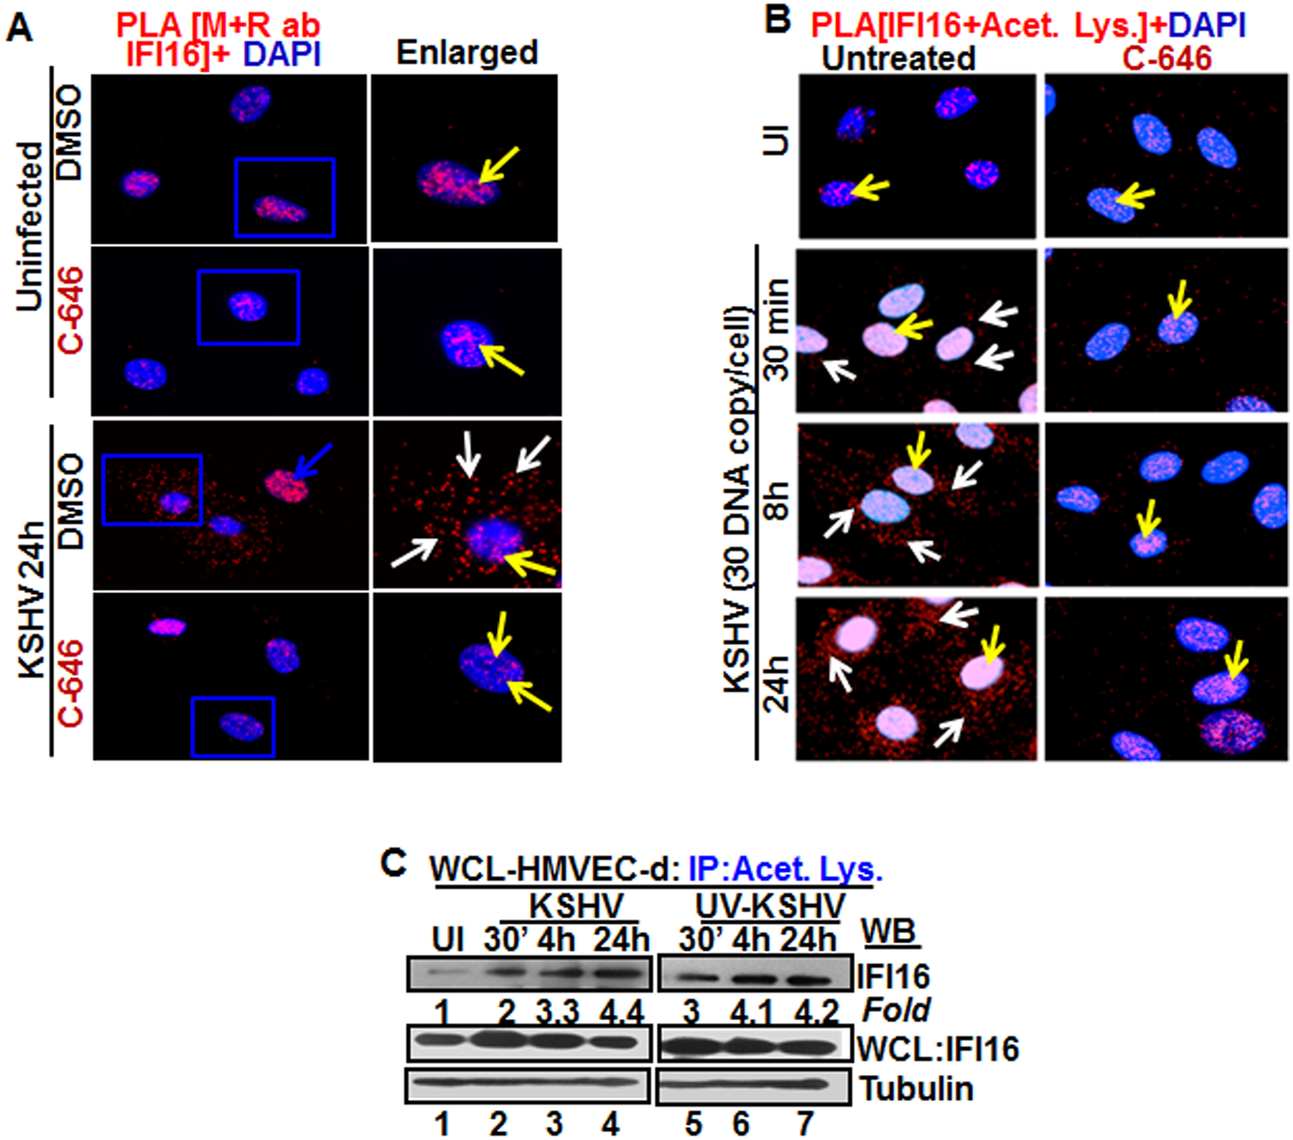 Proximity Ligation Assay (PLA) of IFI16's acetylation and cytoplasmic redistribution during <i>de novo</i> KSHV infection of HMVEC-d cells.